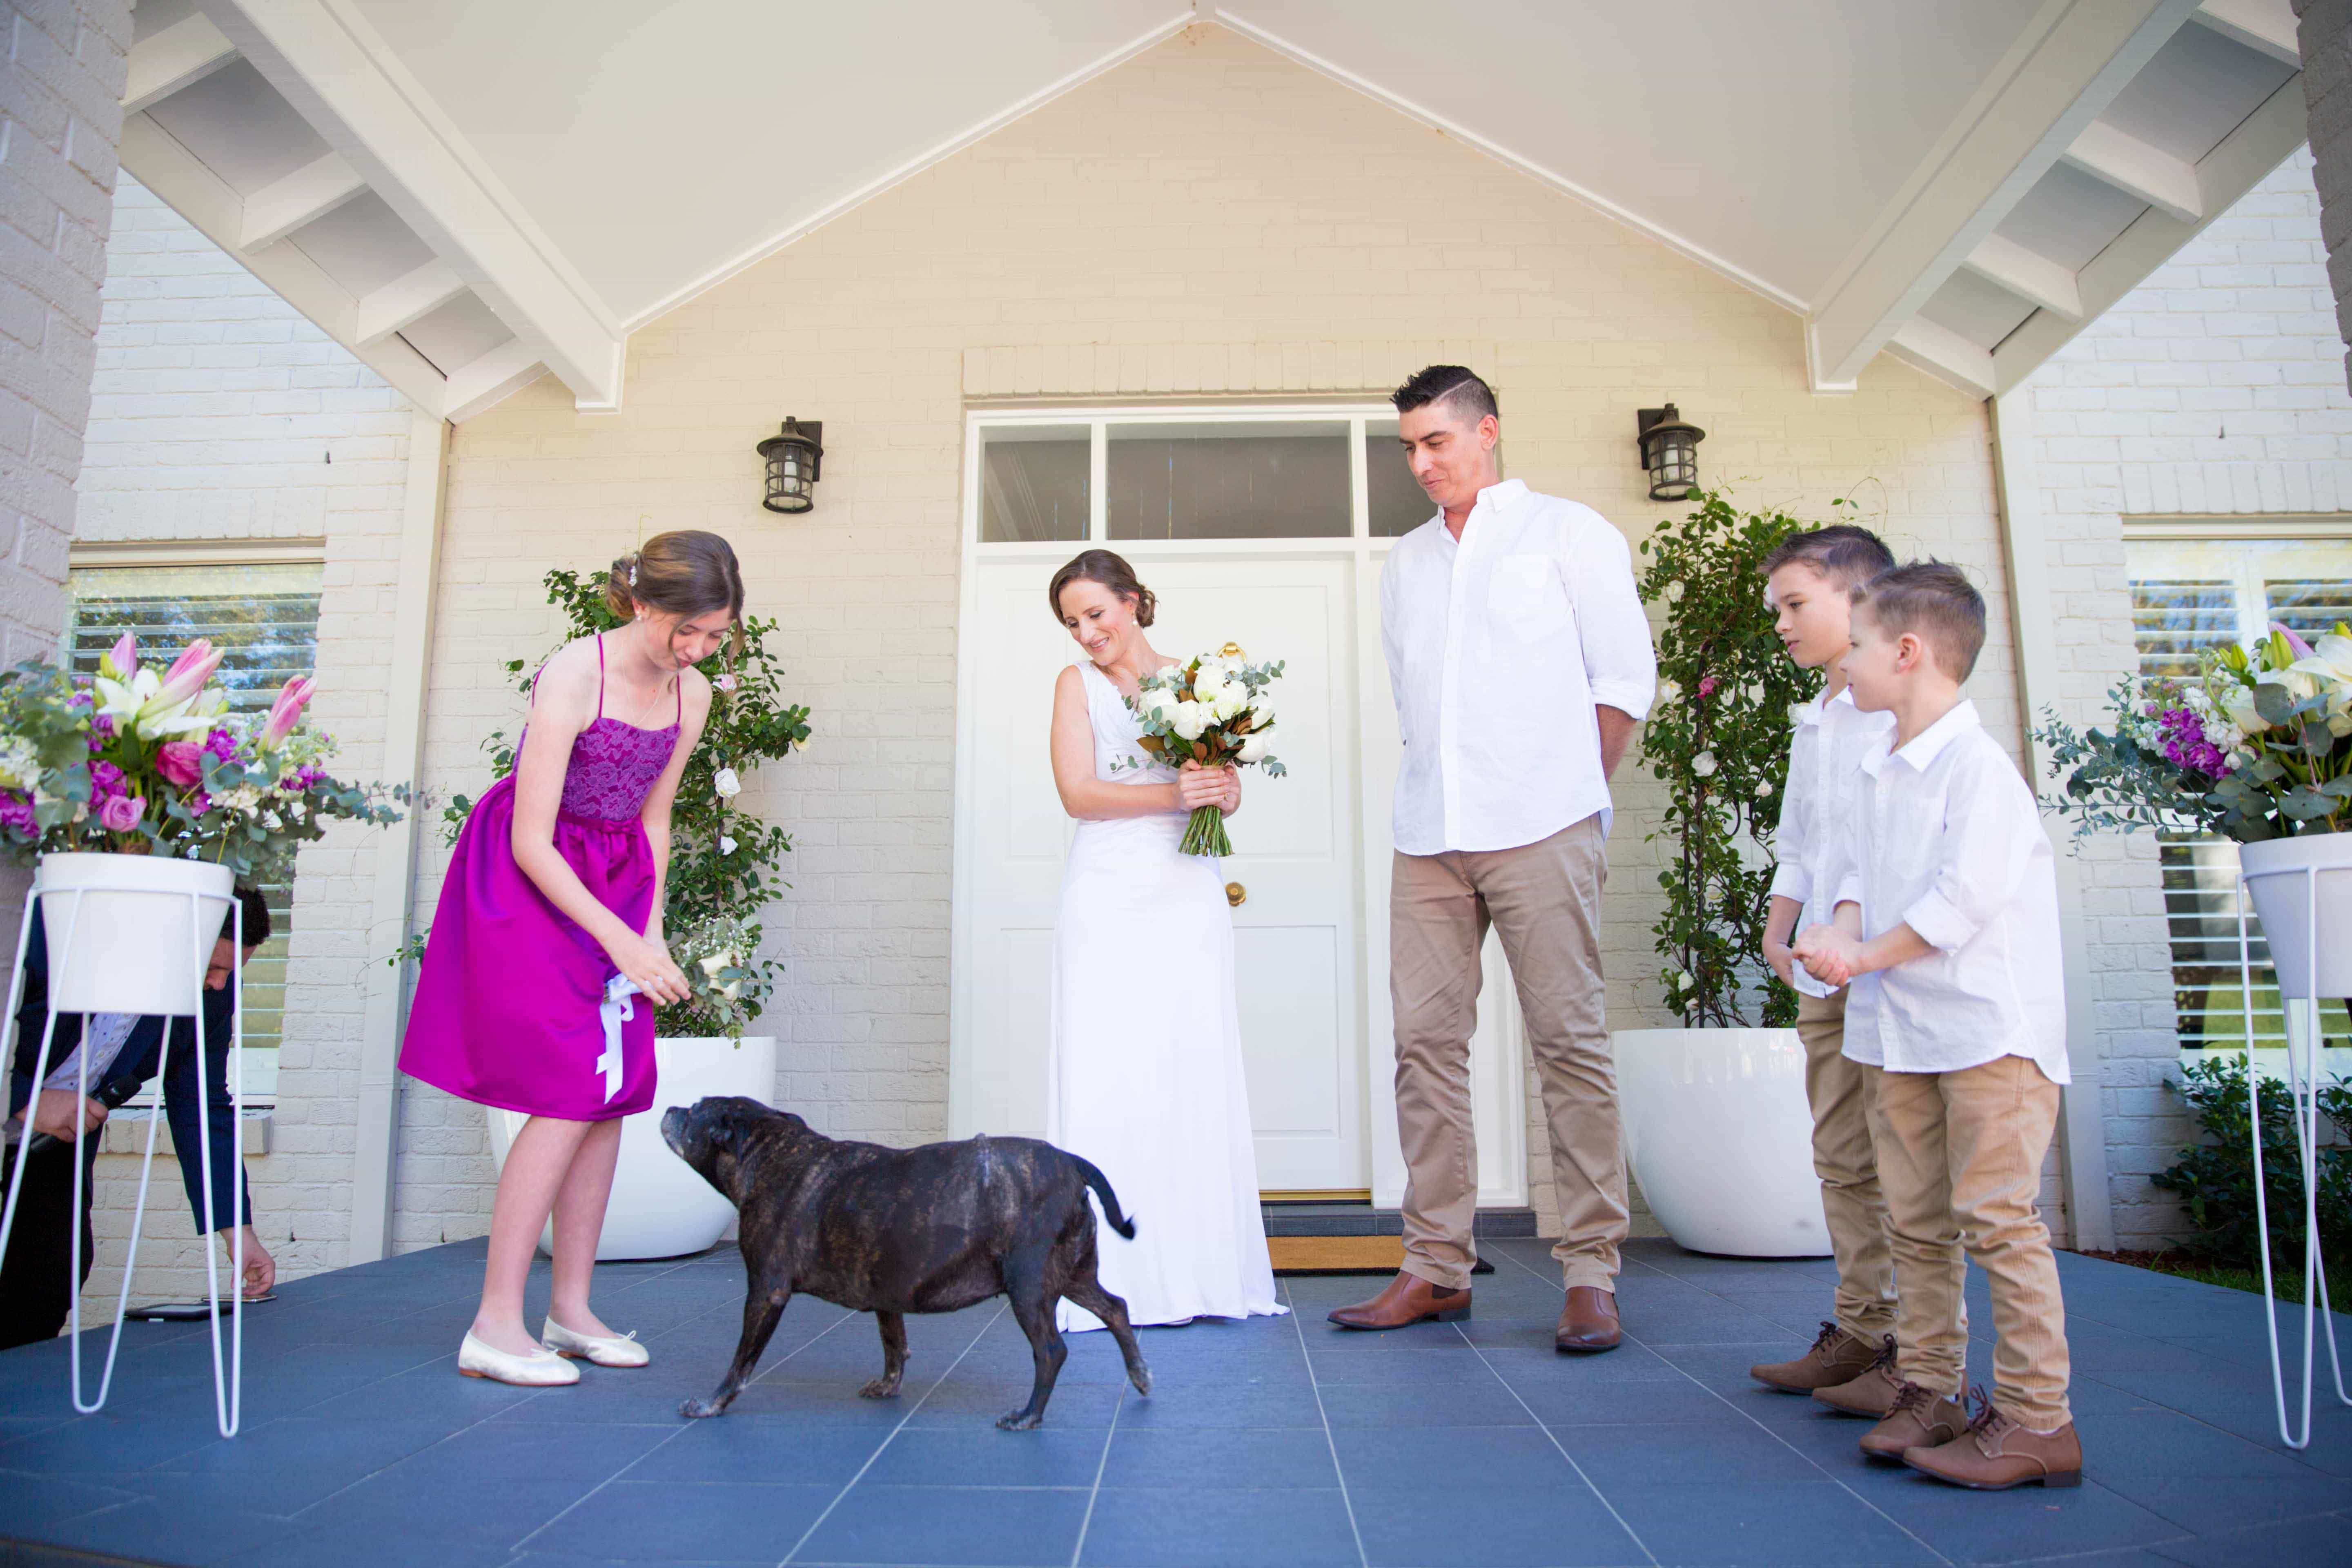 Family at the alter and the dog at the wedding at whitebridge ceremony, NSW